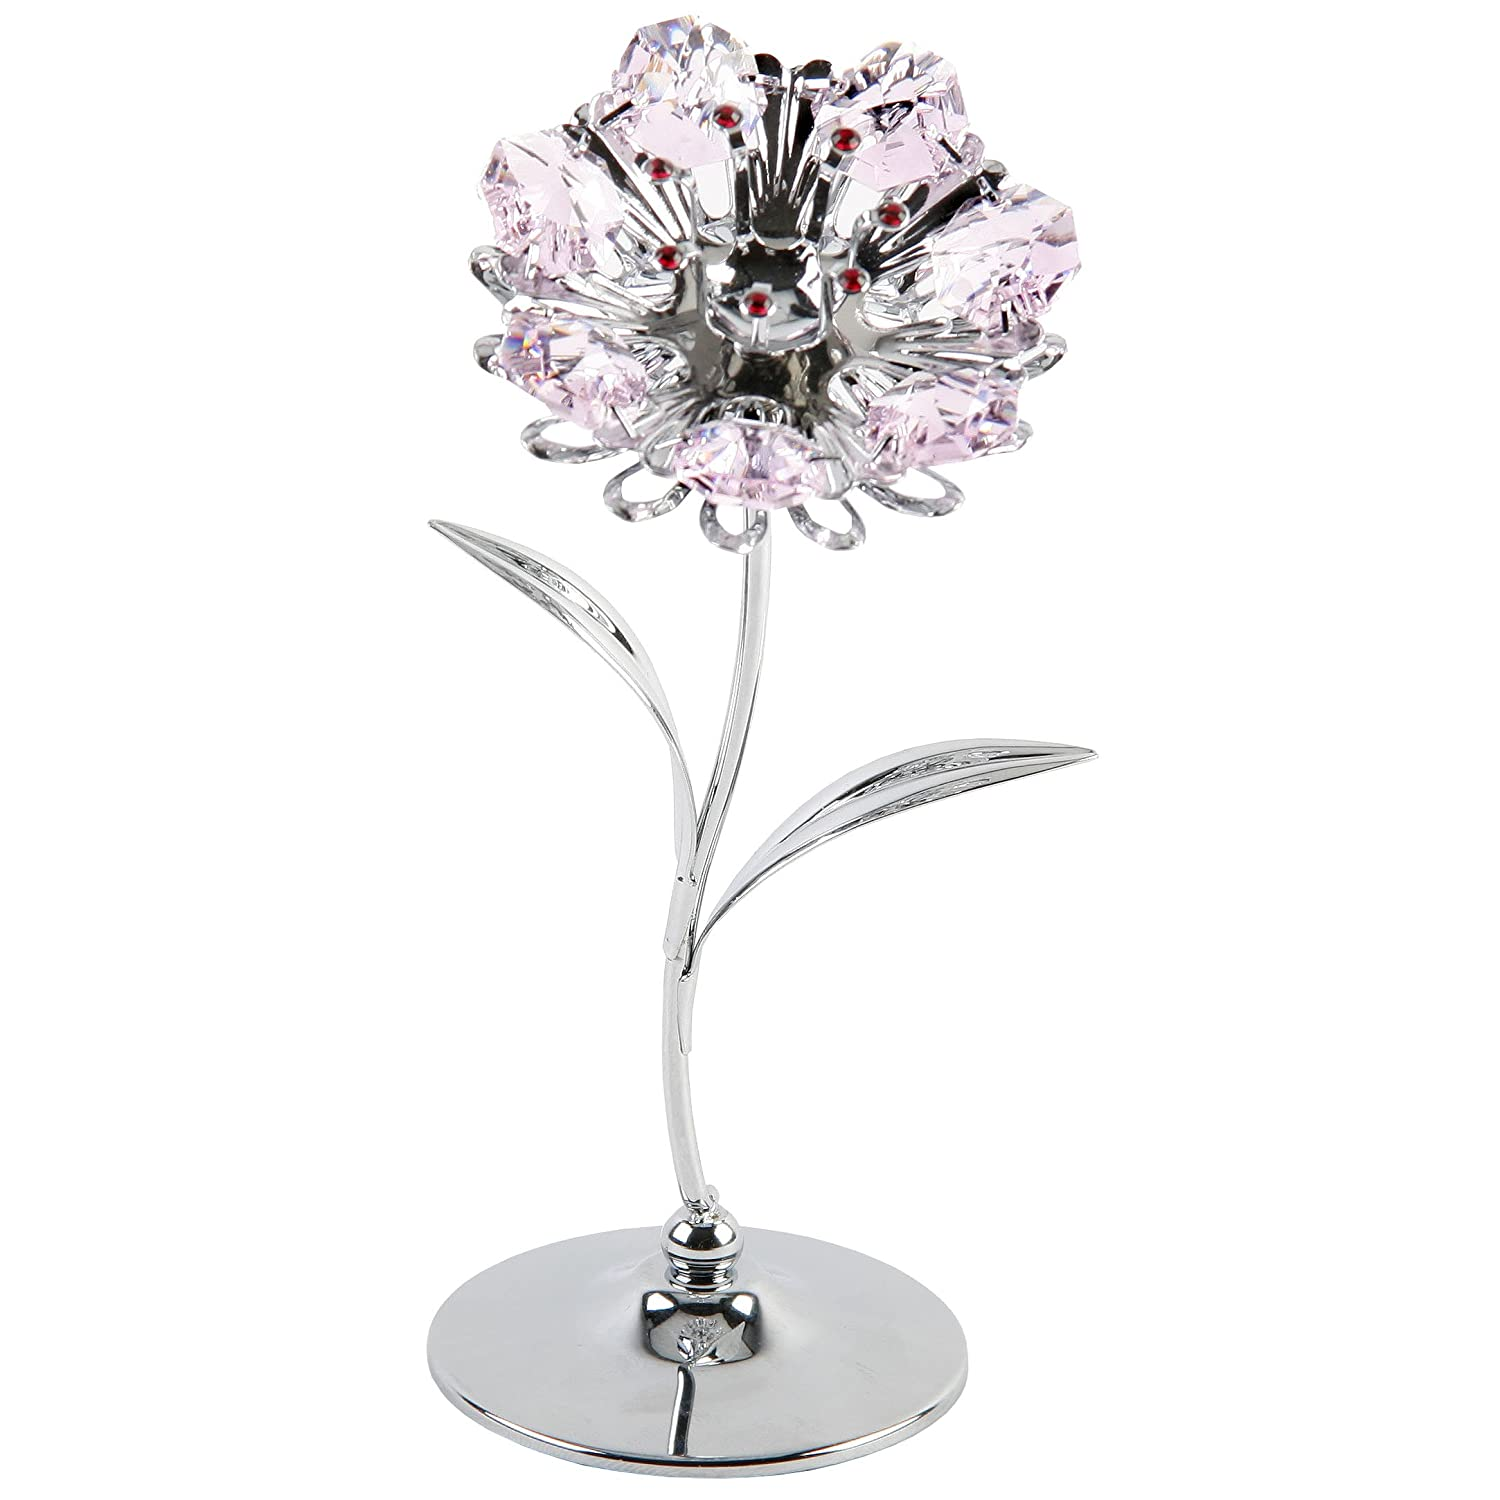 Crystocraft Keepsake Gift Ornament - Silver Sunflower with Pink Swarvoski Crystal Elements by CRYSTOCRAFT